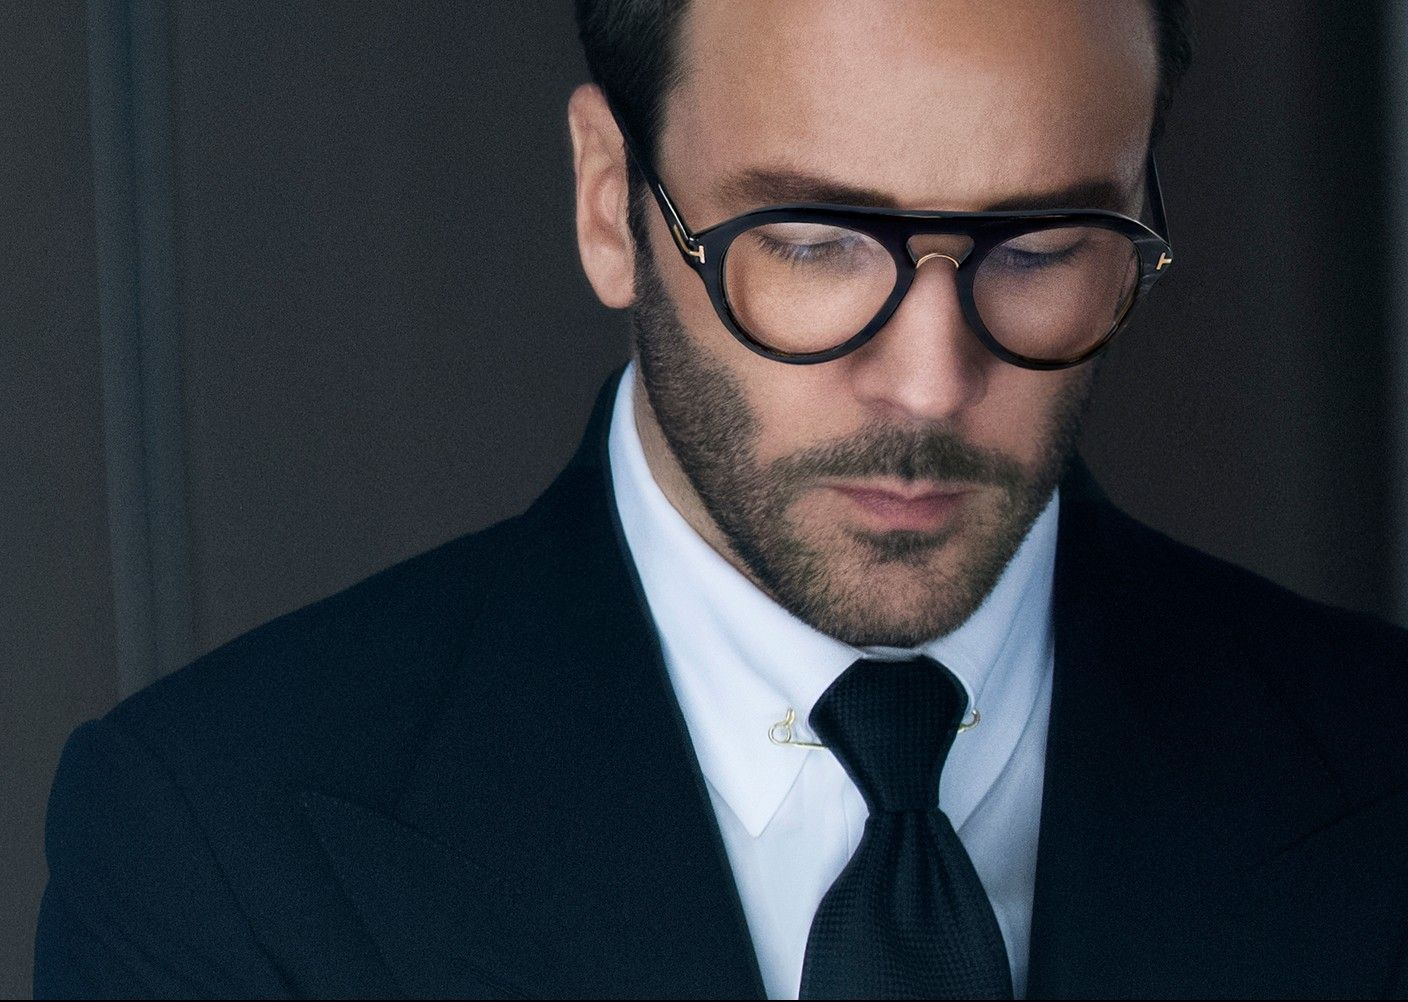 Fashion designer tom ford at the hollywood something or other awards - Tom Ford Launches Private Collection Eyewear